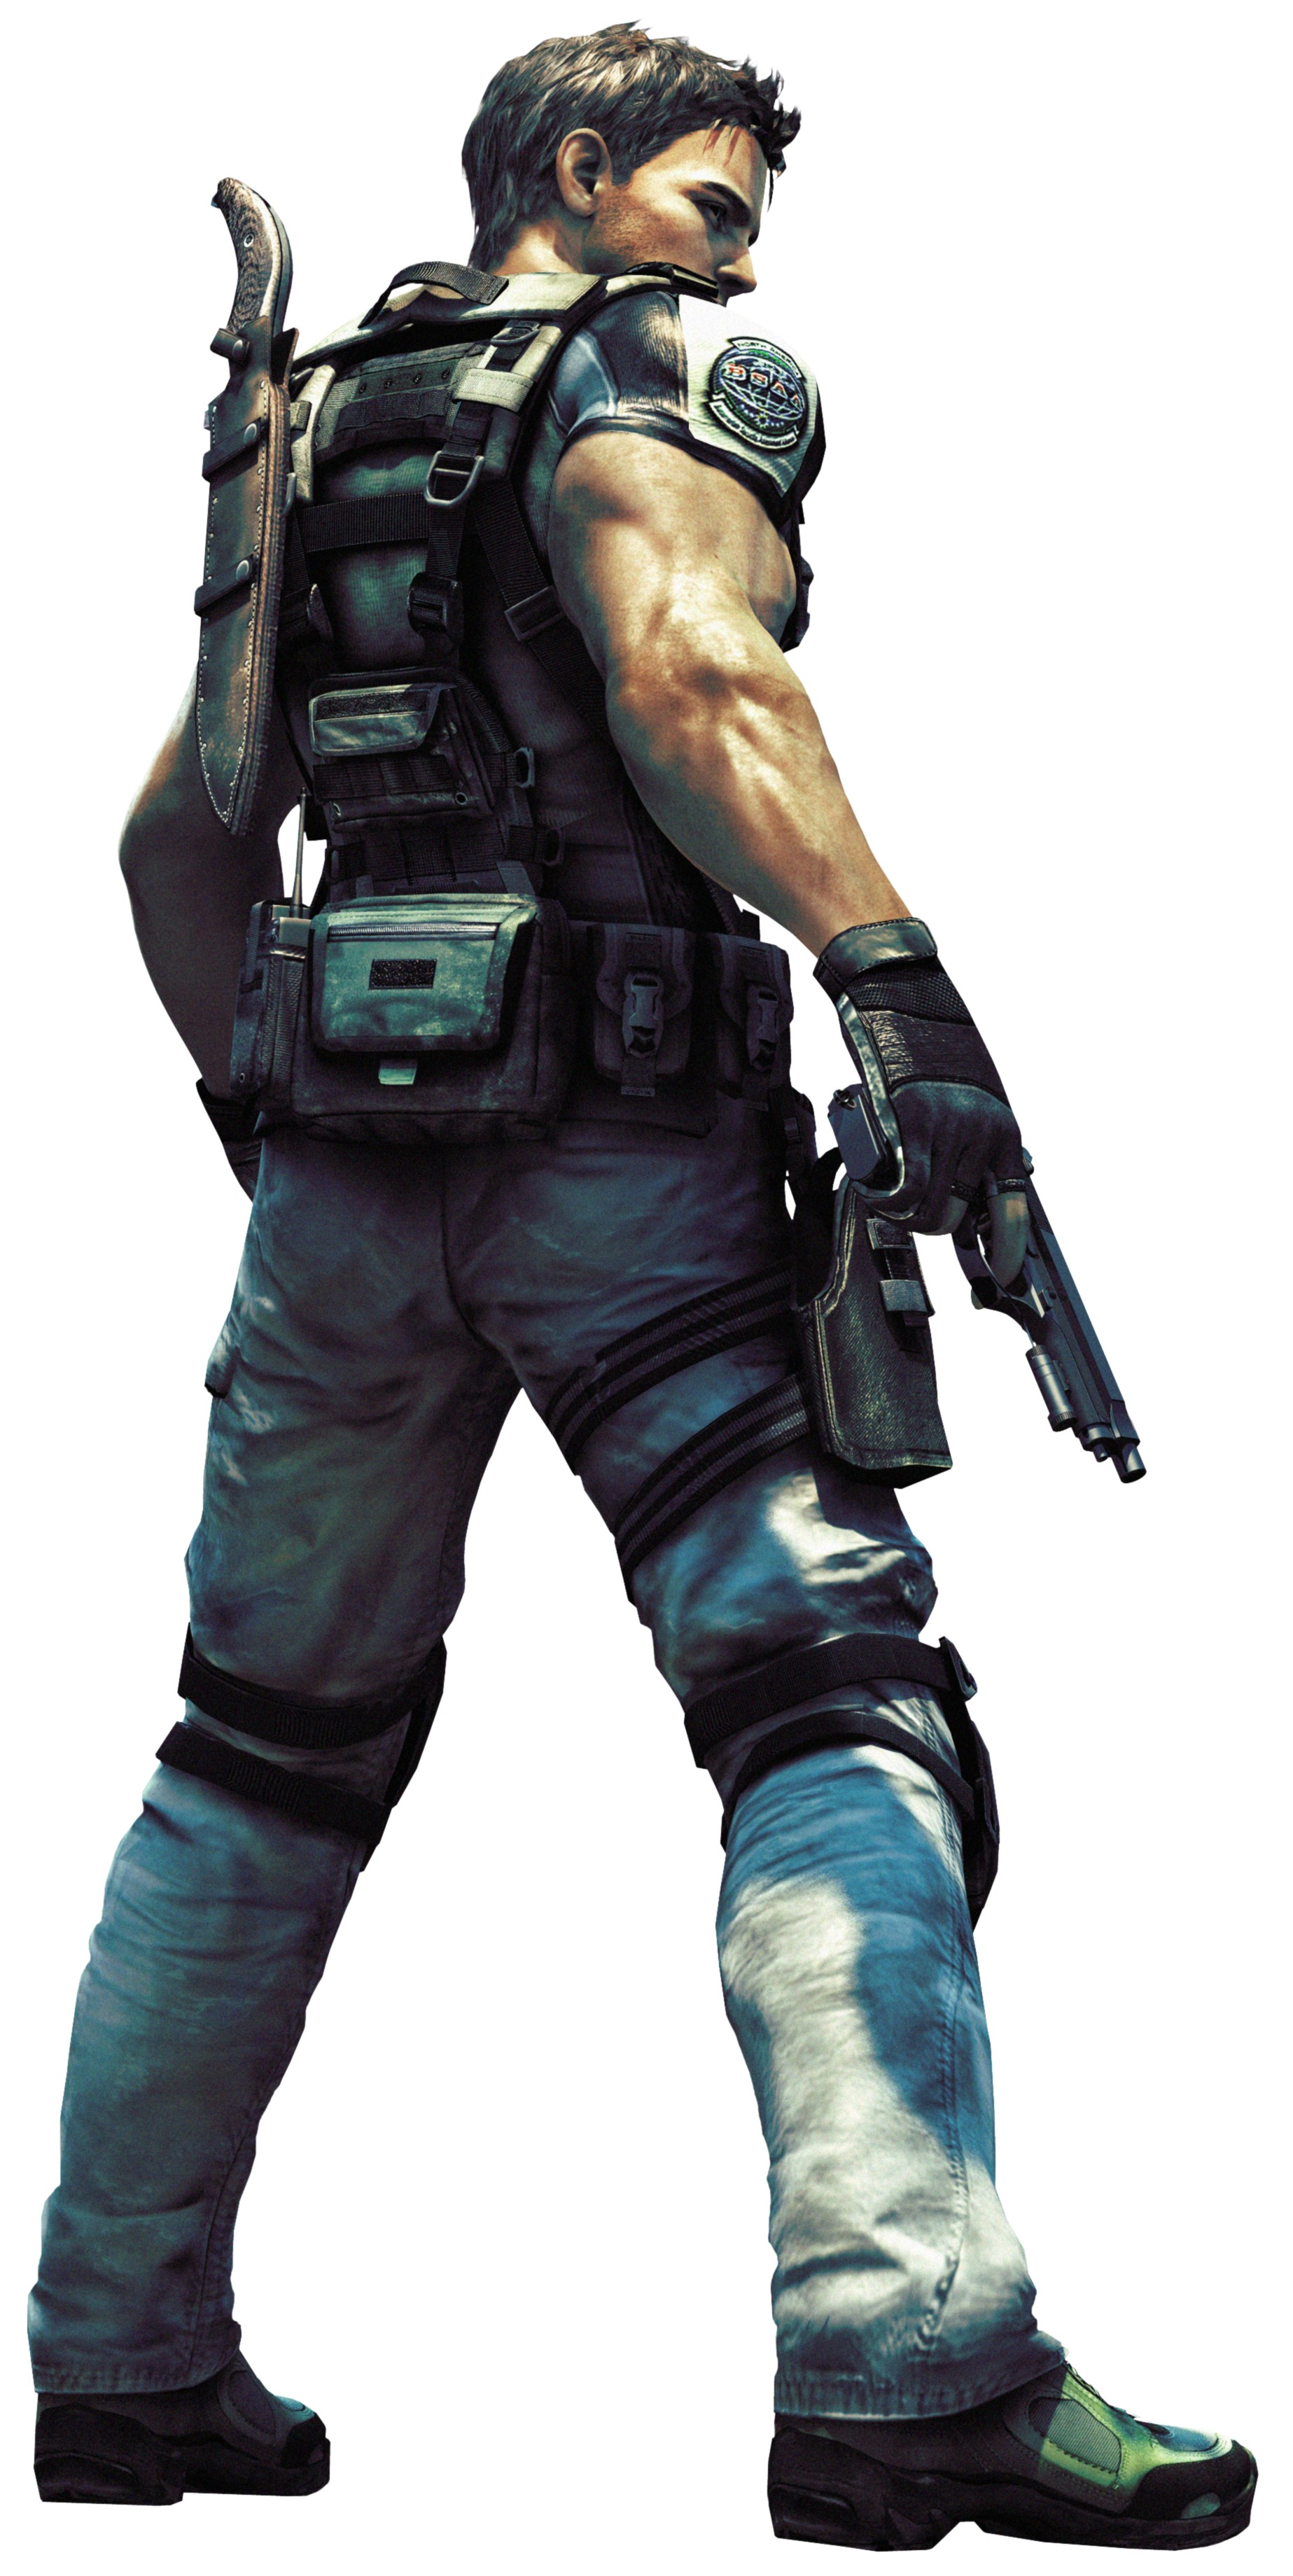 The Skills of Chris Redfield – Be a Game Character